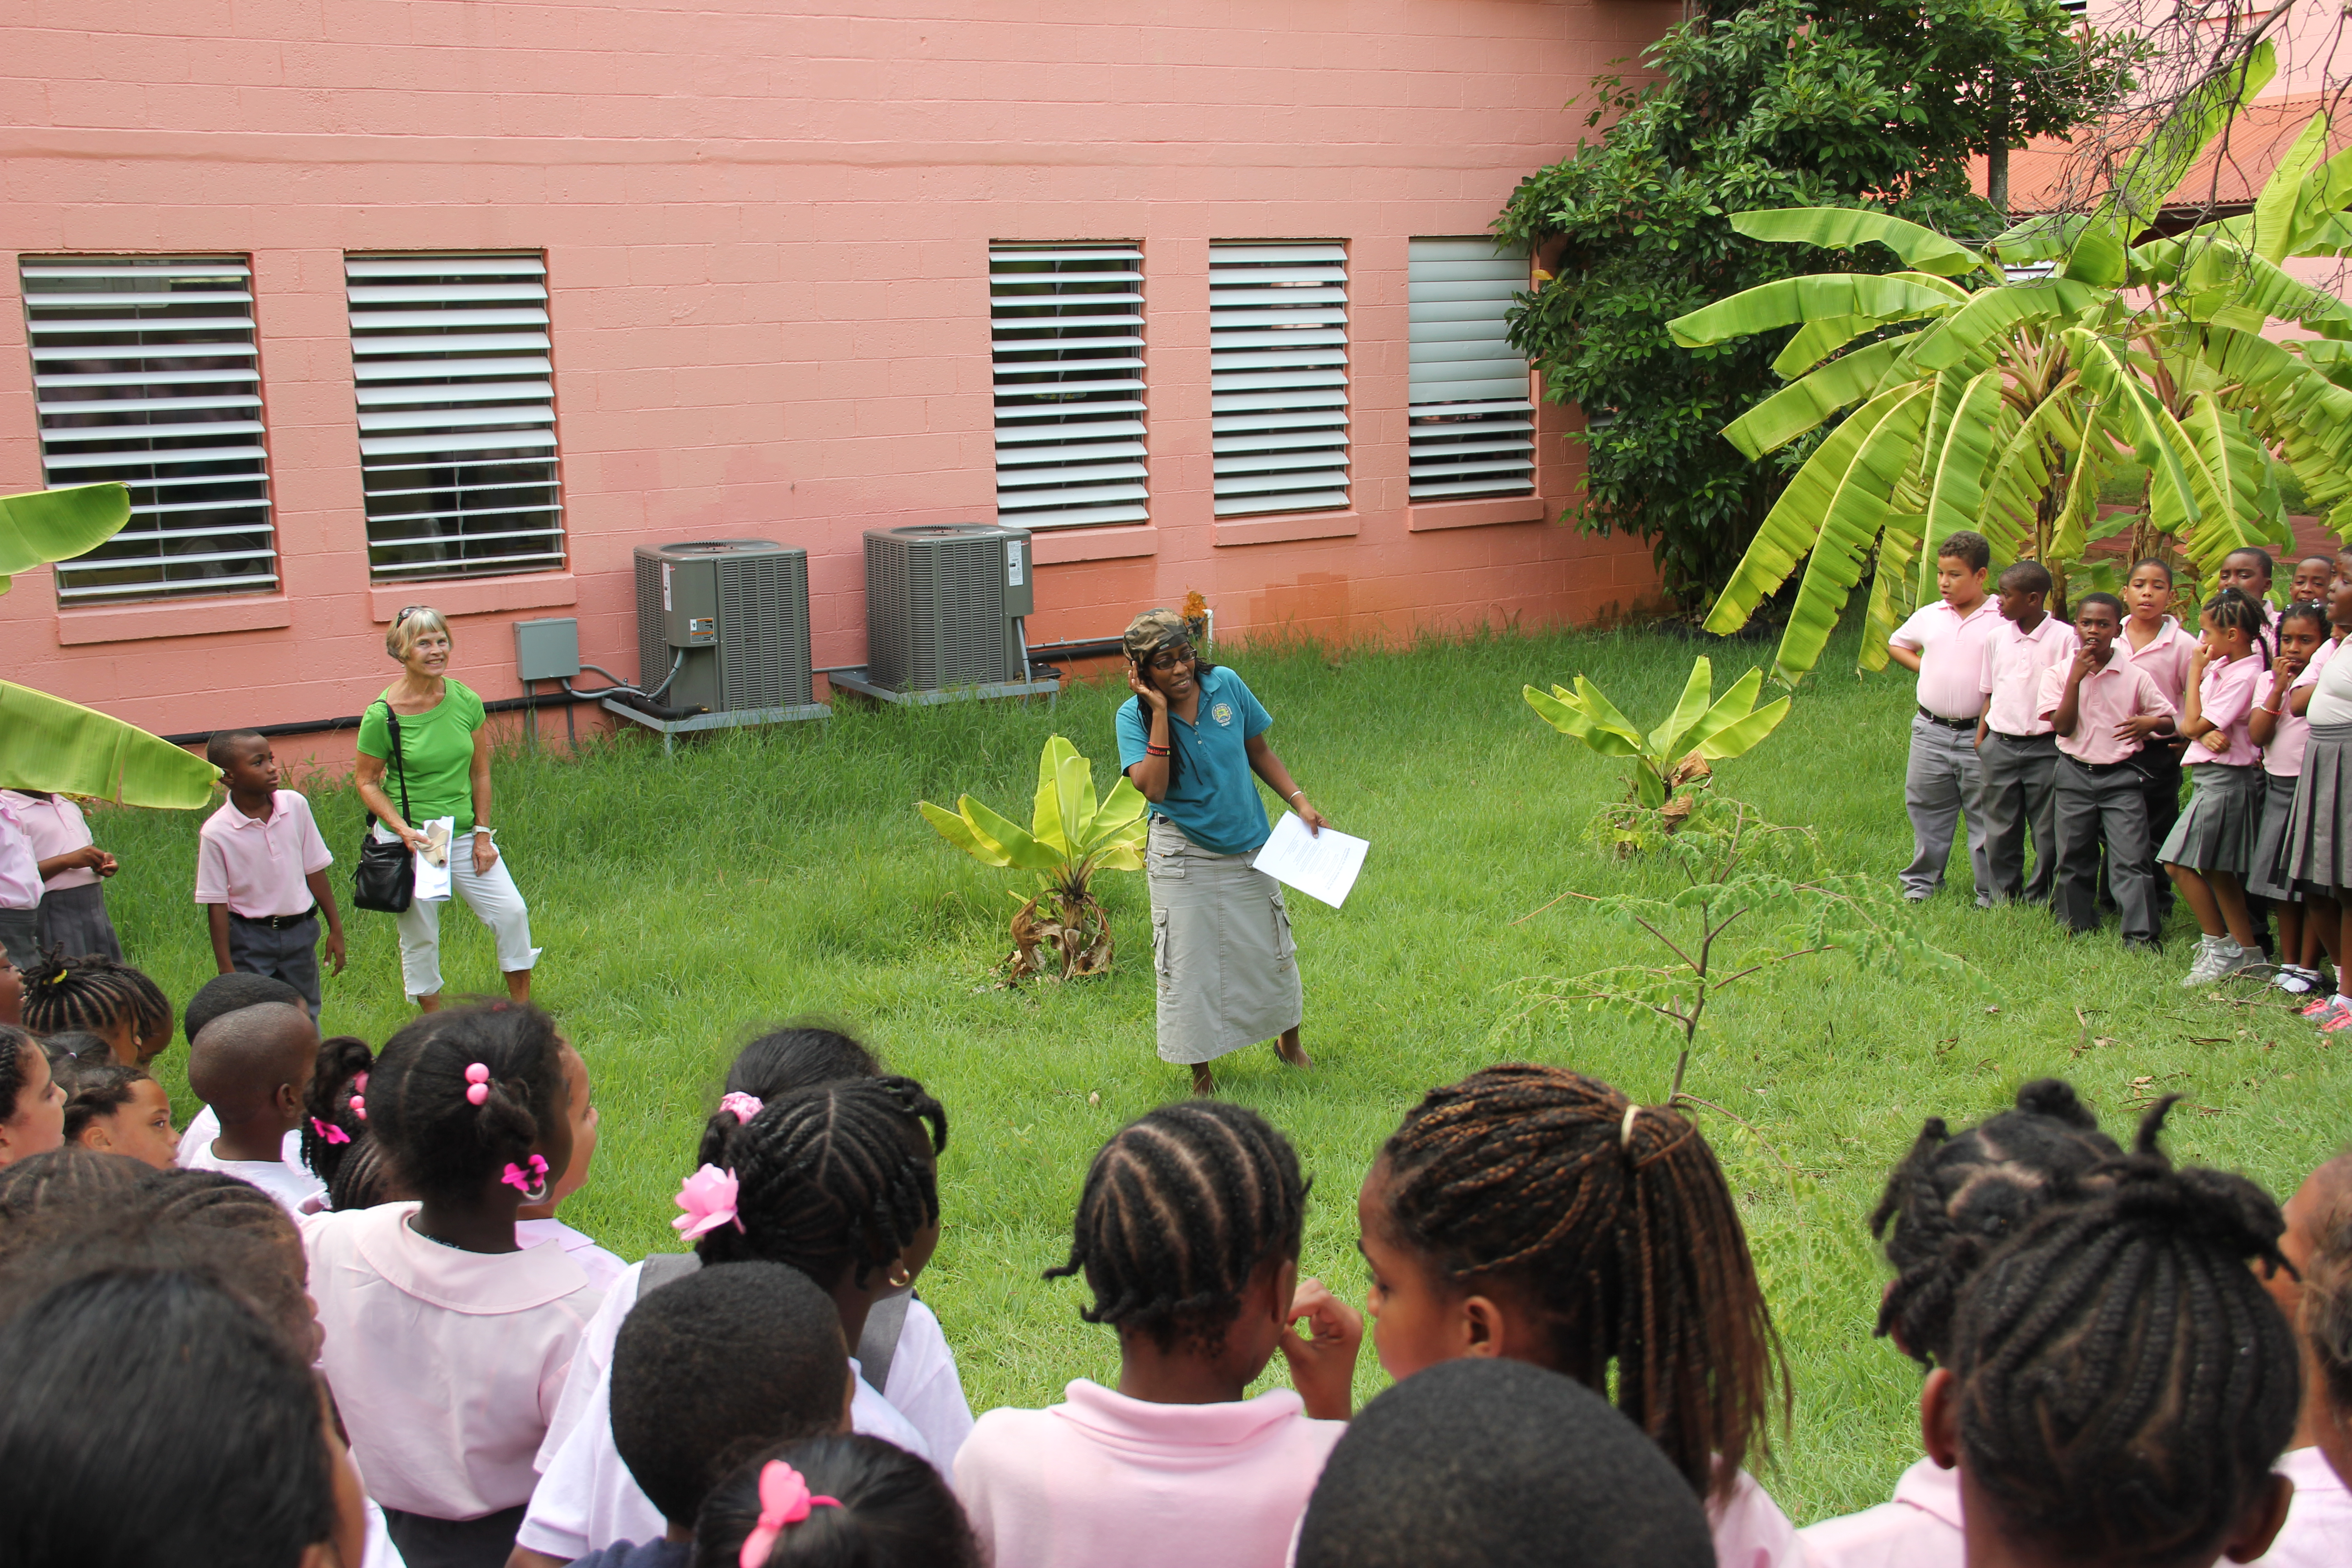 Sharing my Moringa Poem with the students at my old Elementary School